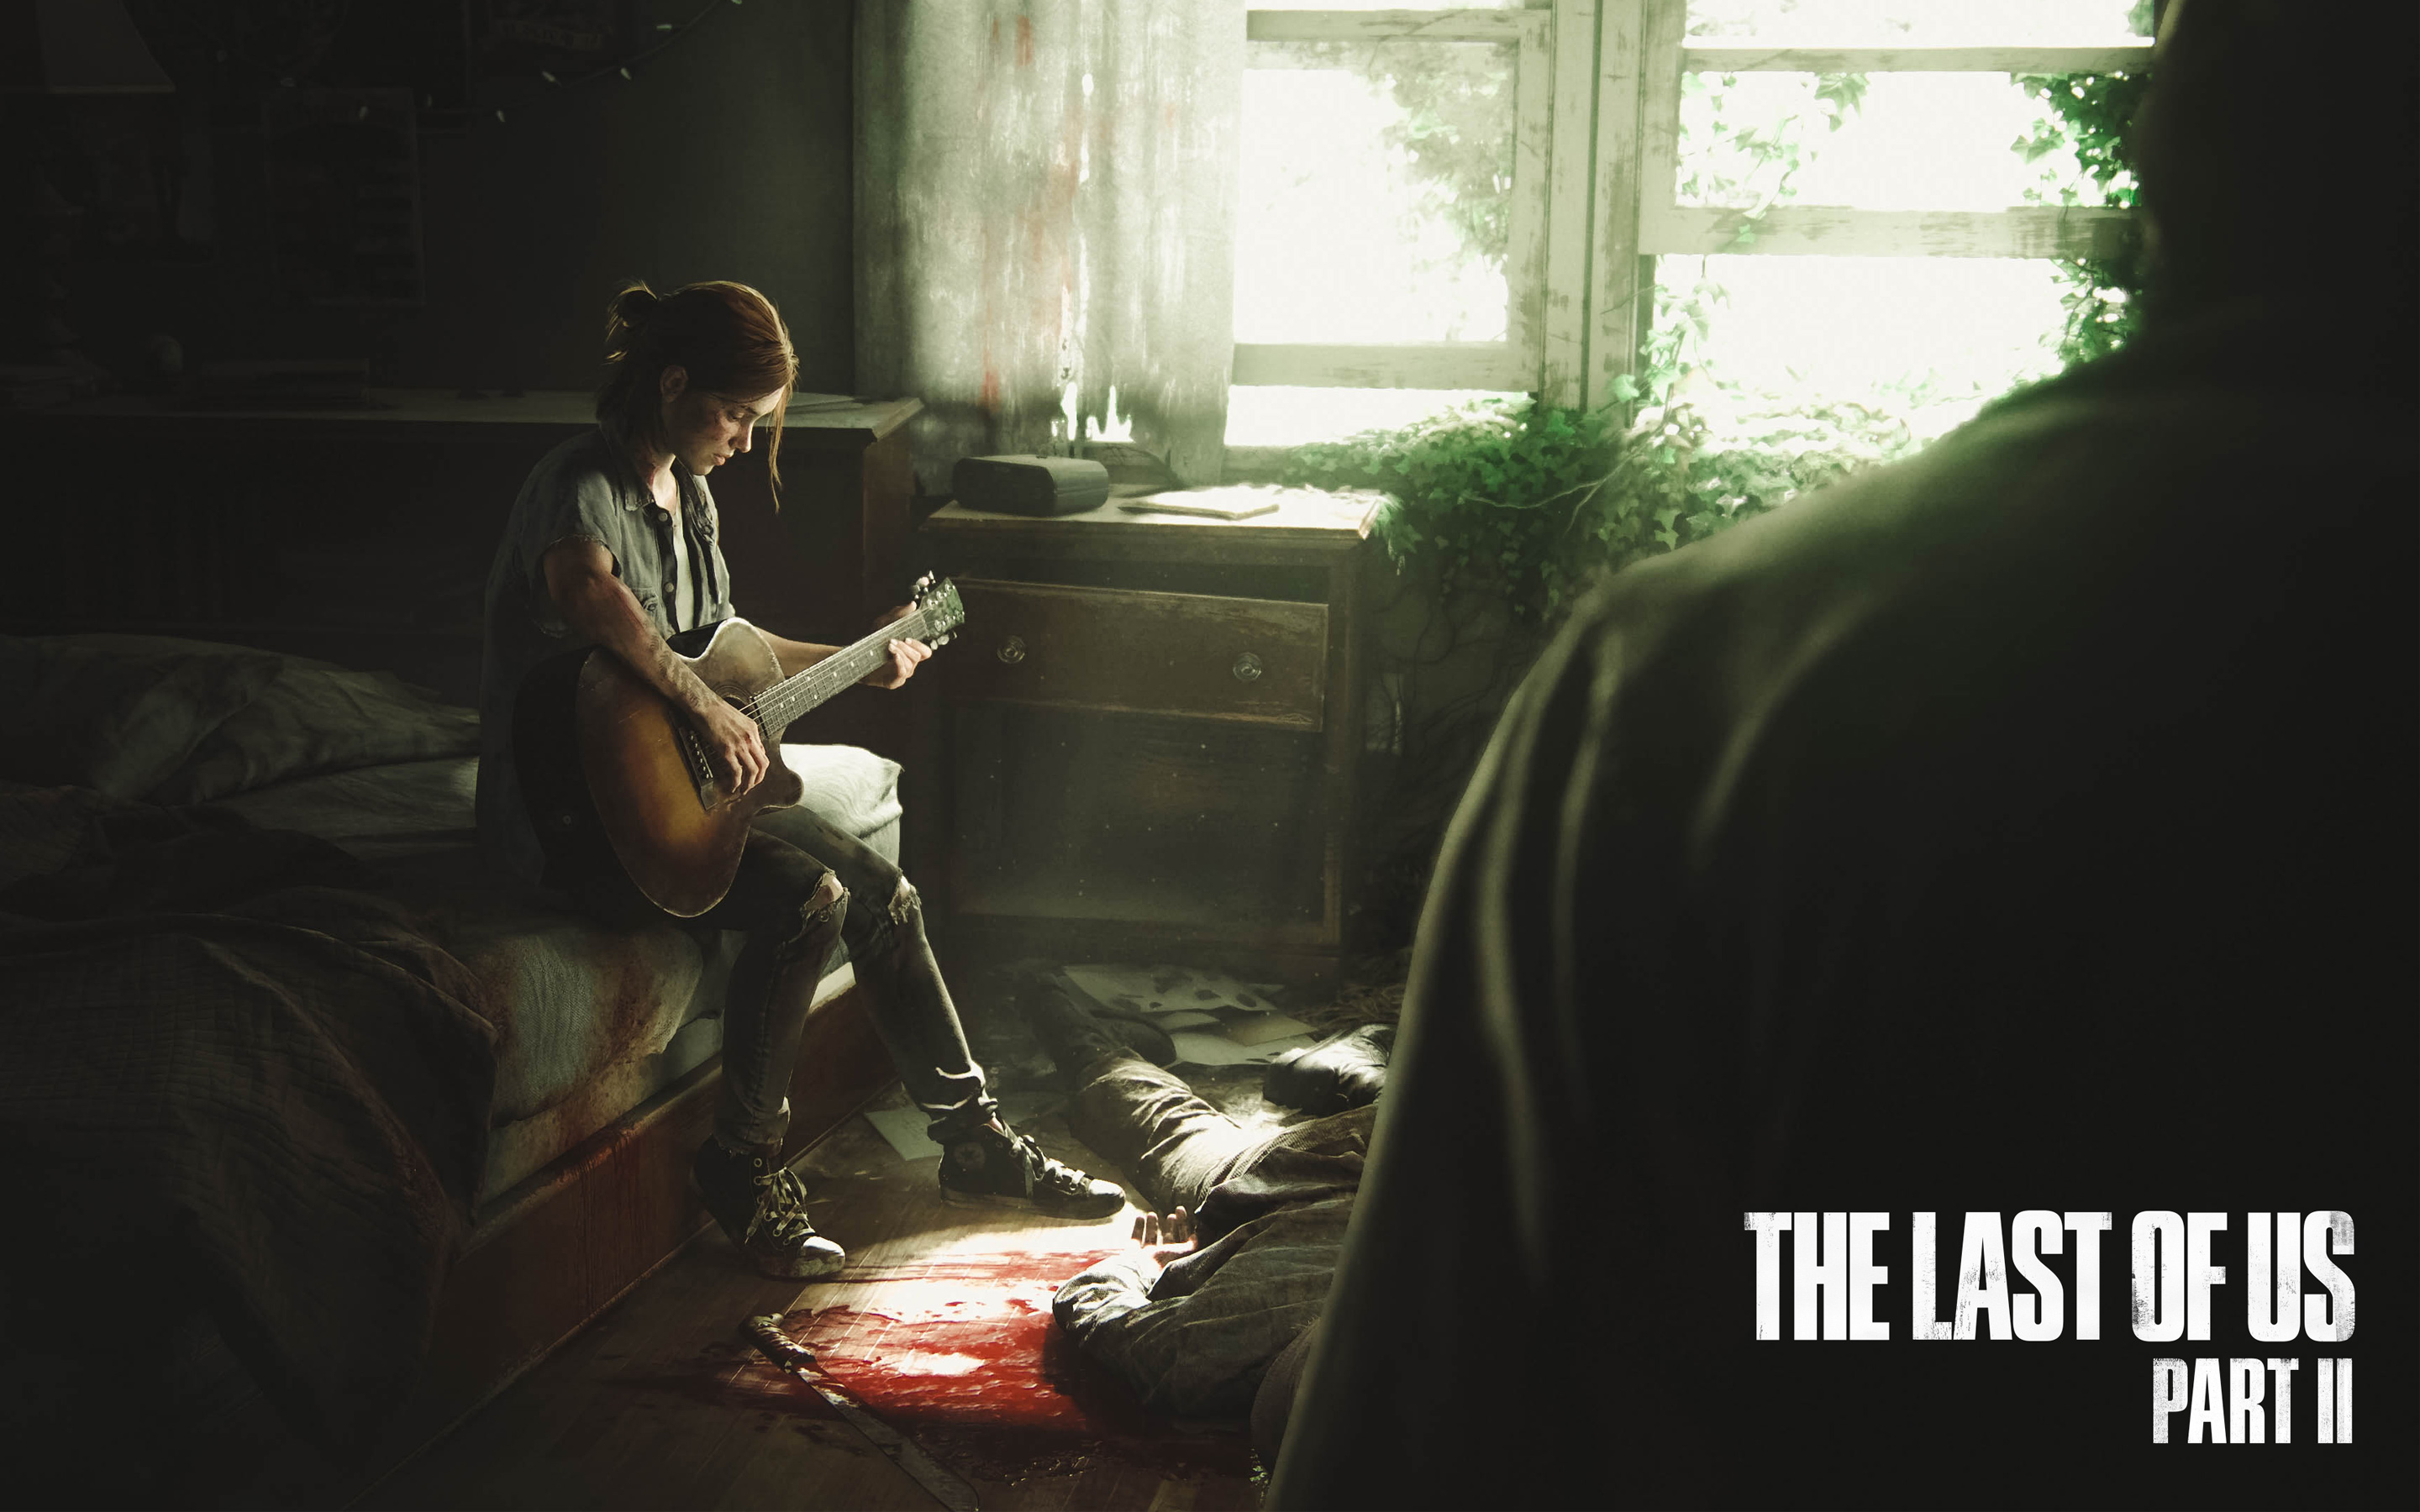 The Last of Us Part II Ellie 4K wallpaper